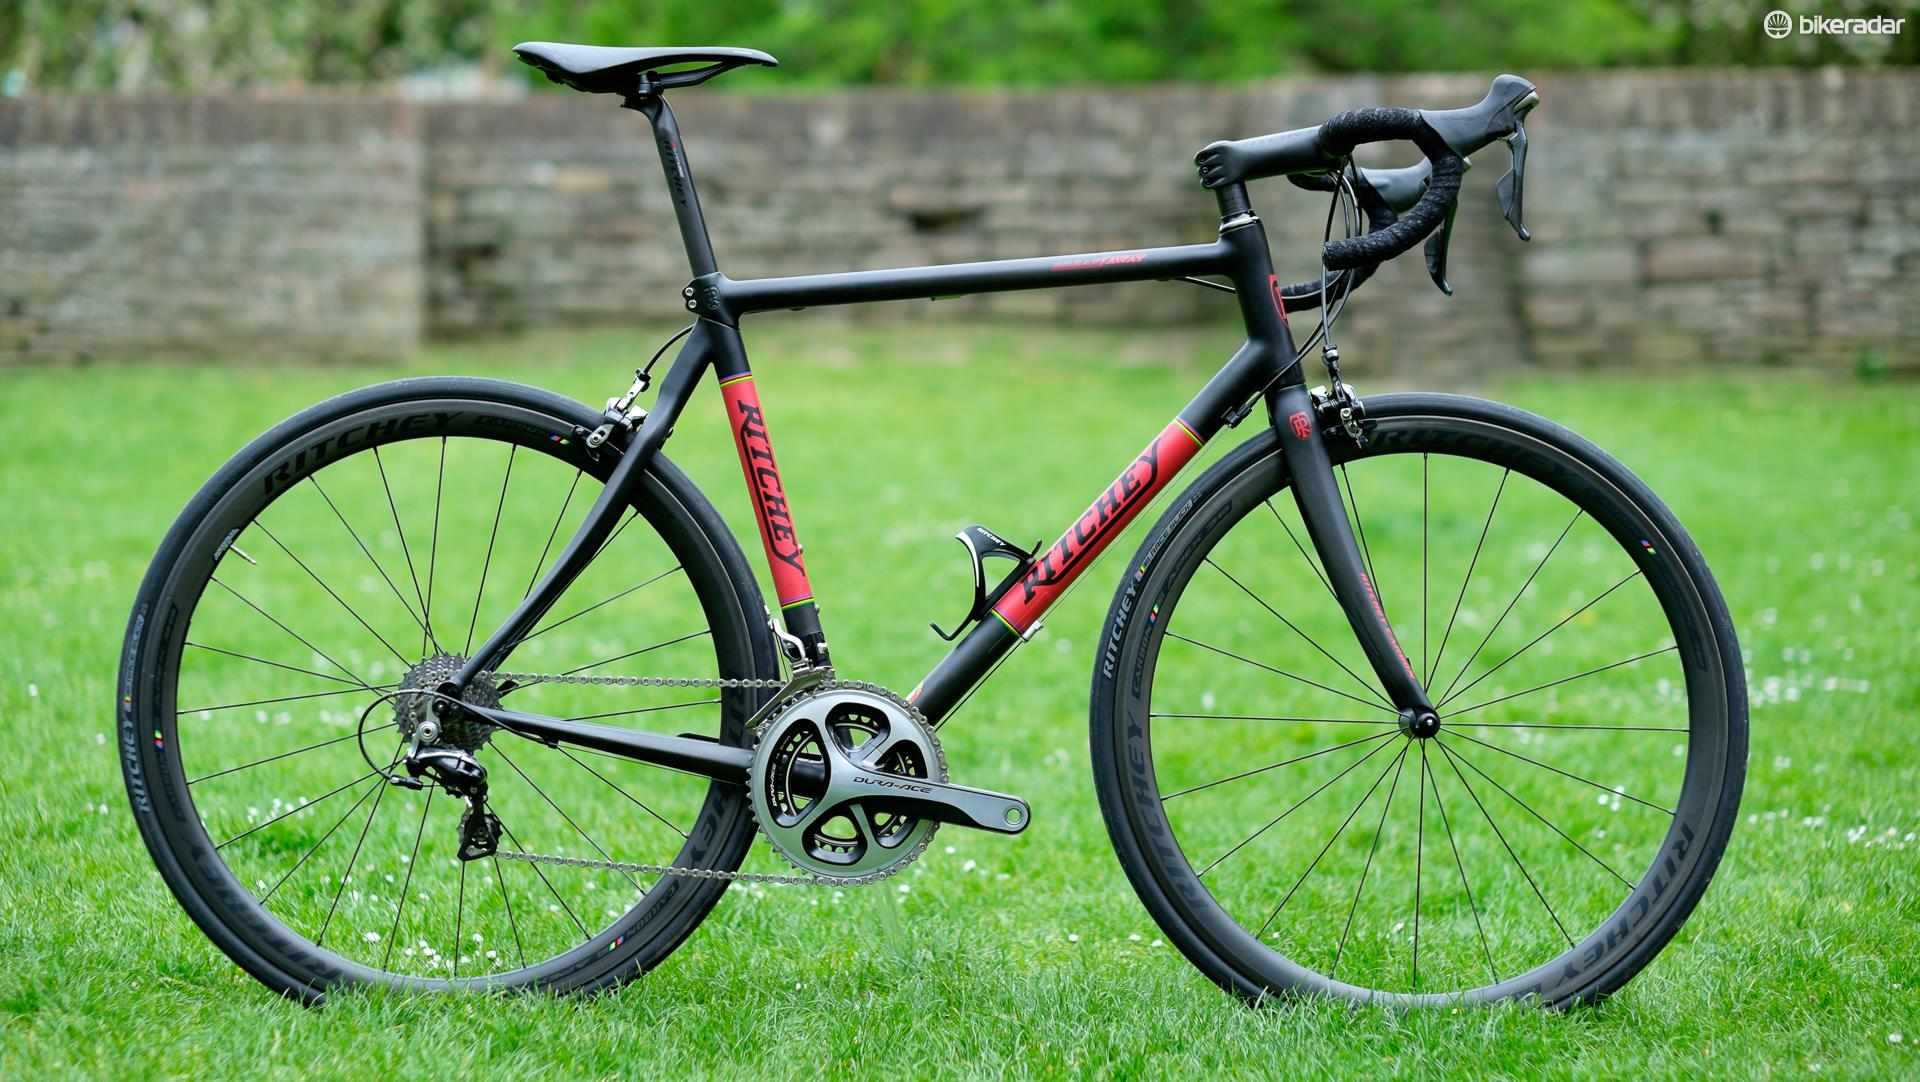 Ritchey's Carbon Break-away does a super job of hiding its dividing abilities